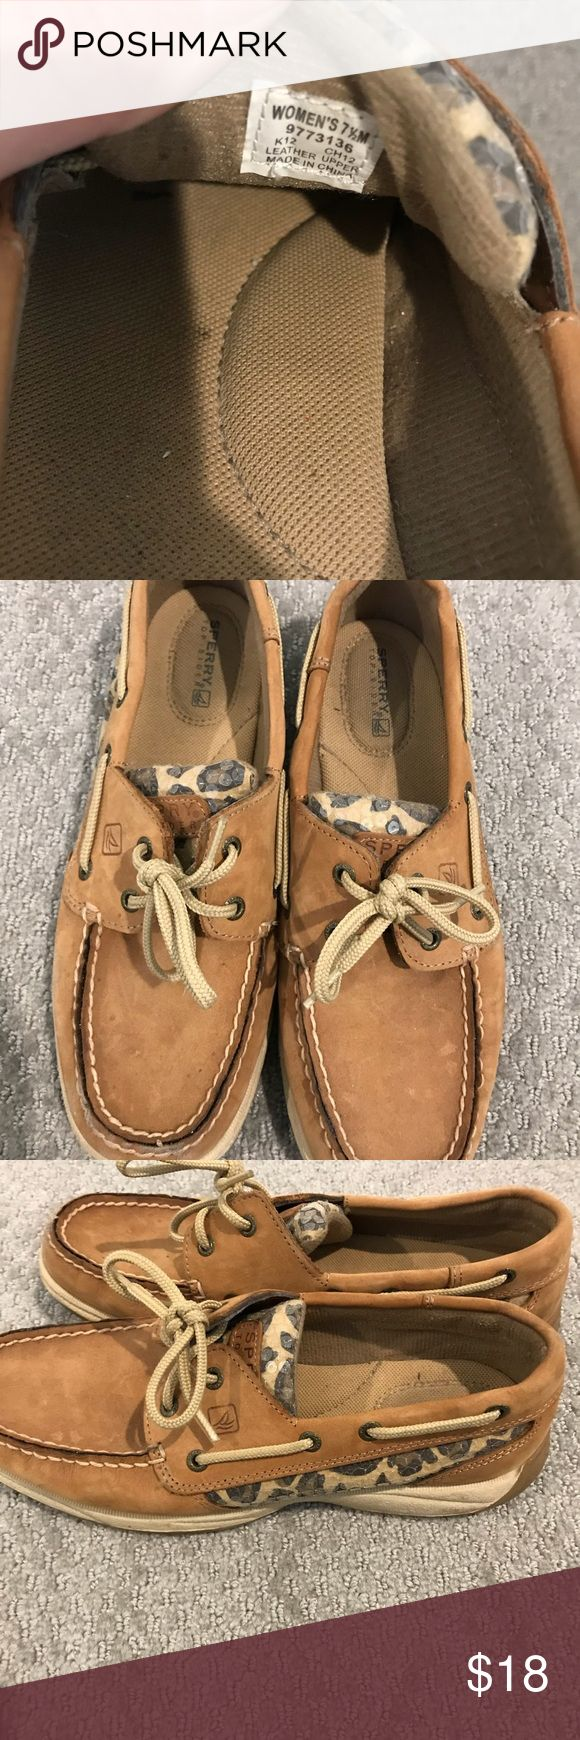 Leopard sperry siZe 7.5 used. With sequin sparkle Used sperry boat shoes. That have leopard and sequin accent. In good used condition. Bundle or make offers Sperry Top-Sider Shoes Flats & Loafers